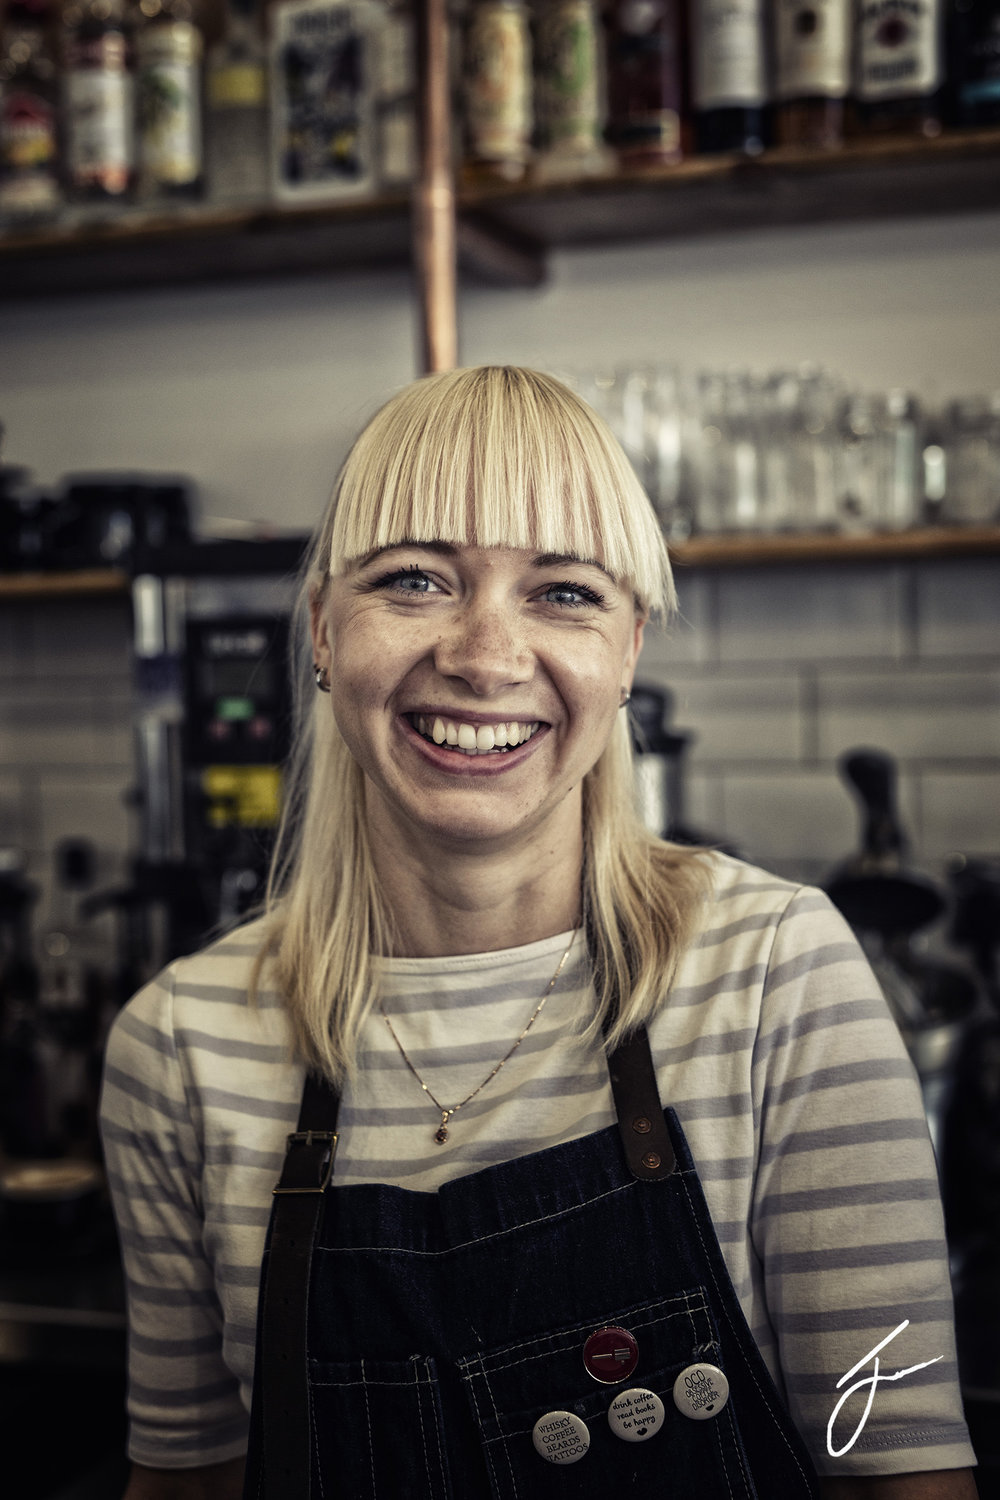 Lana, manager of The Calypso Coffee Company, Torquay. ©Julie Corcoran 2018